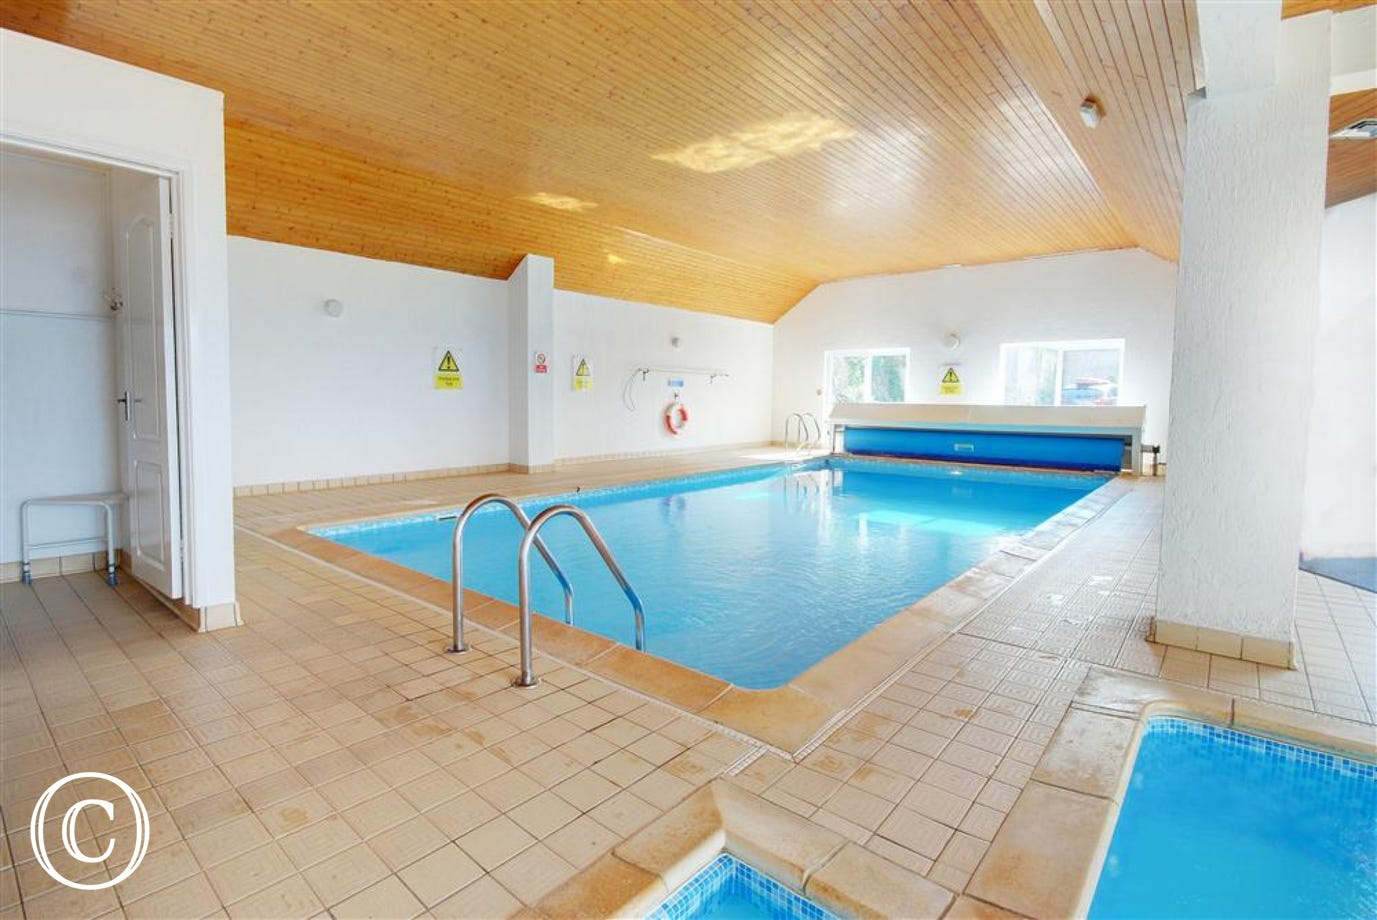 The apartment benefits from a large heated pool and a smaller pool for the children.